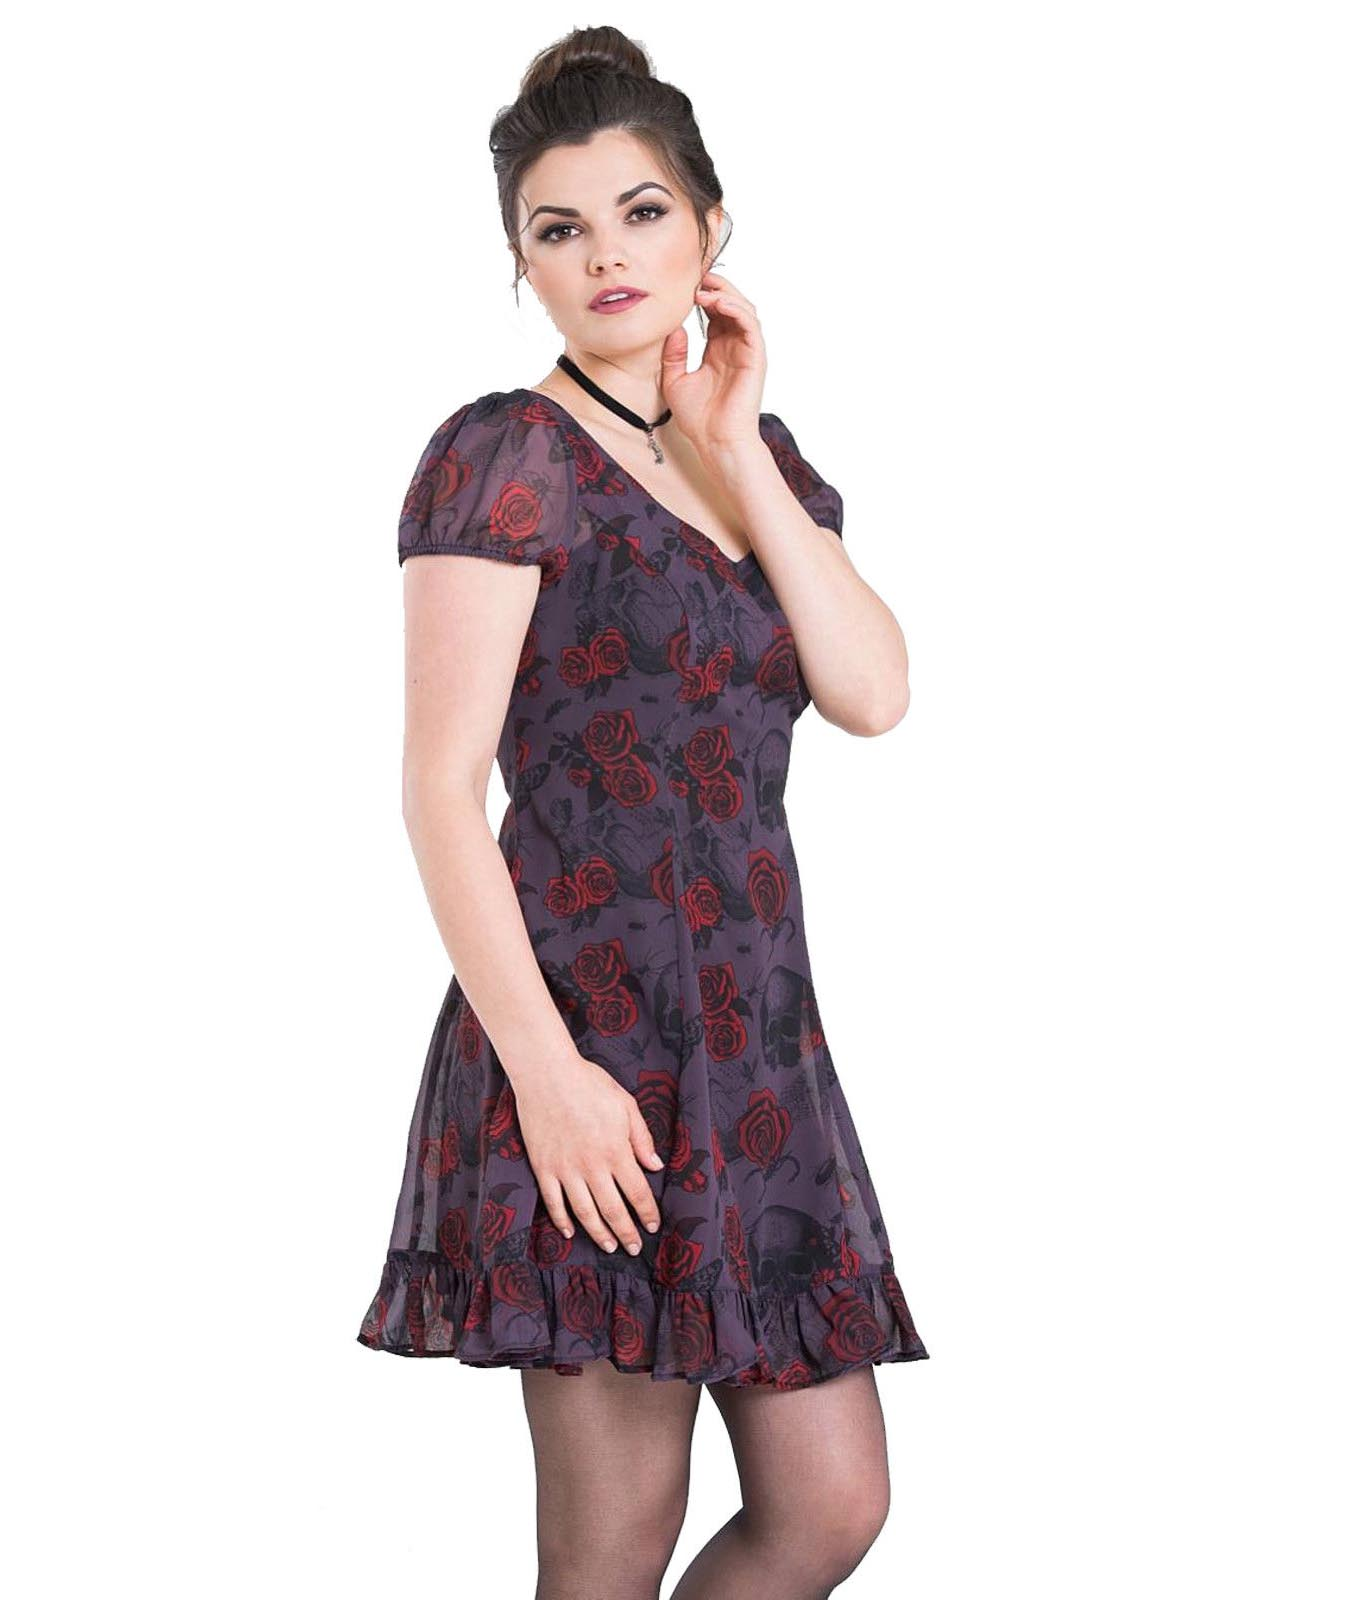 Hell-Bunny-Goth-Floaty-Mini-Dress-BUGS-amp-ROSES-Skulls-Butterfly-Purple-All-Sizes thumbnail 3